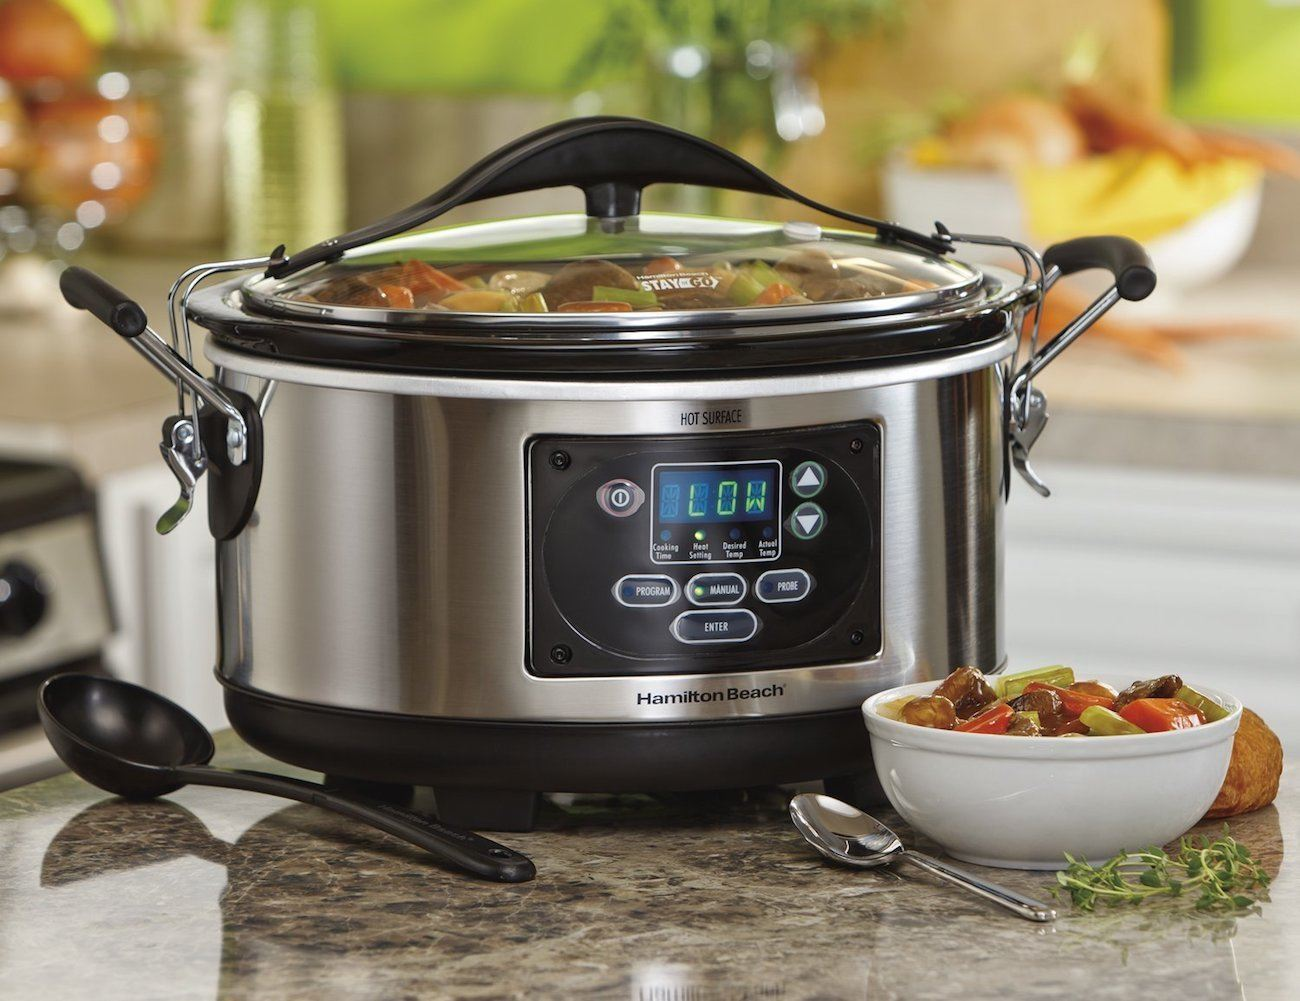 Hamilton Beach Set 'n Forget Slow Cooker